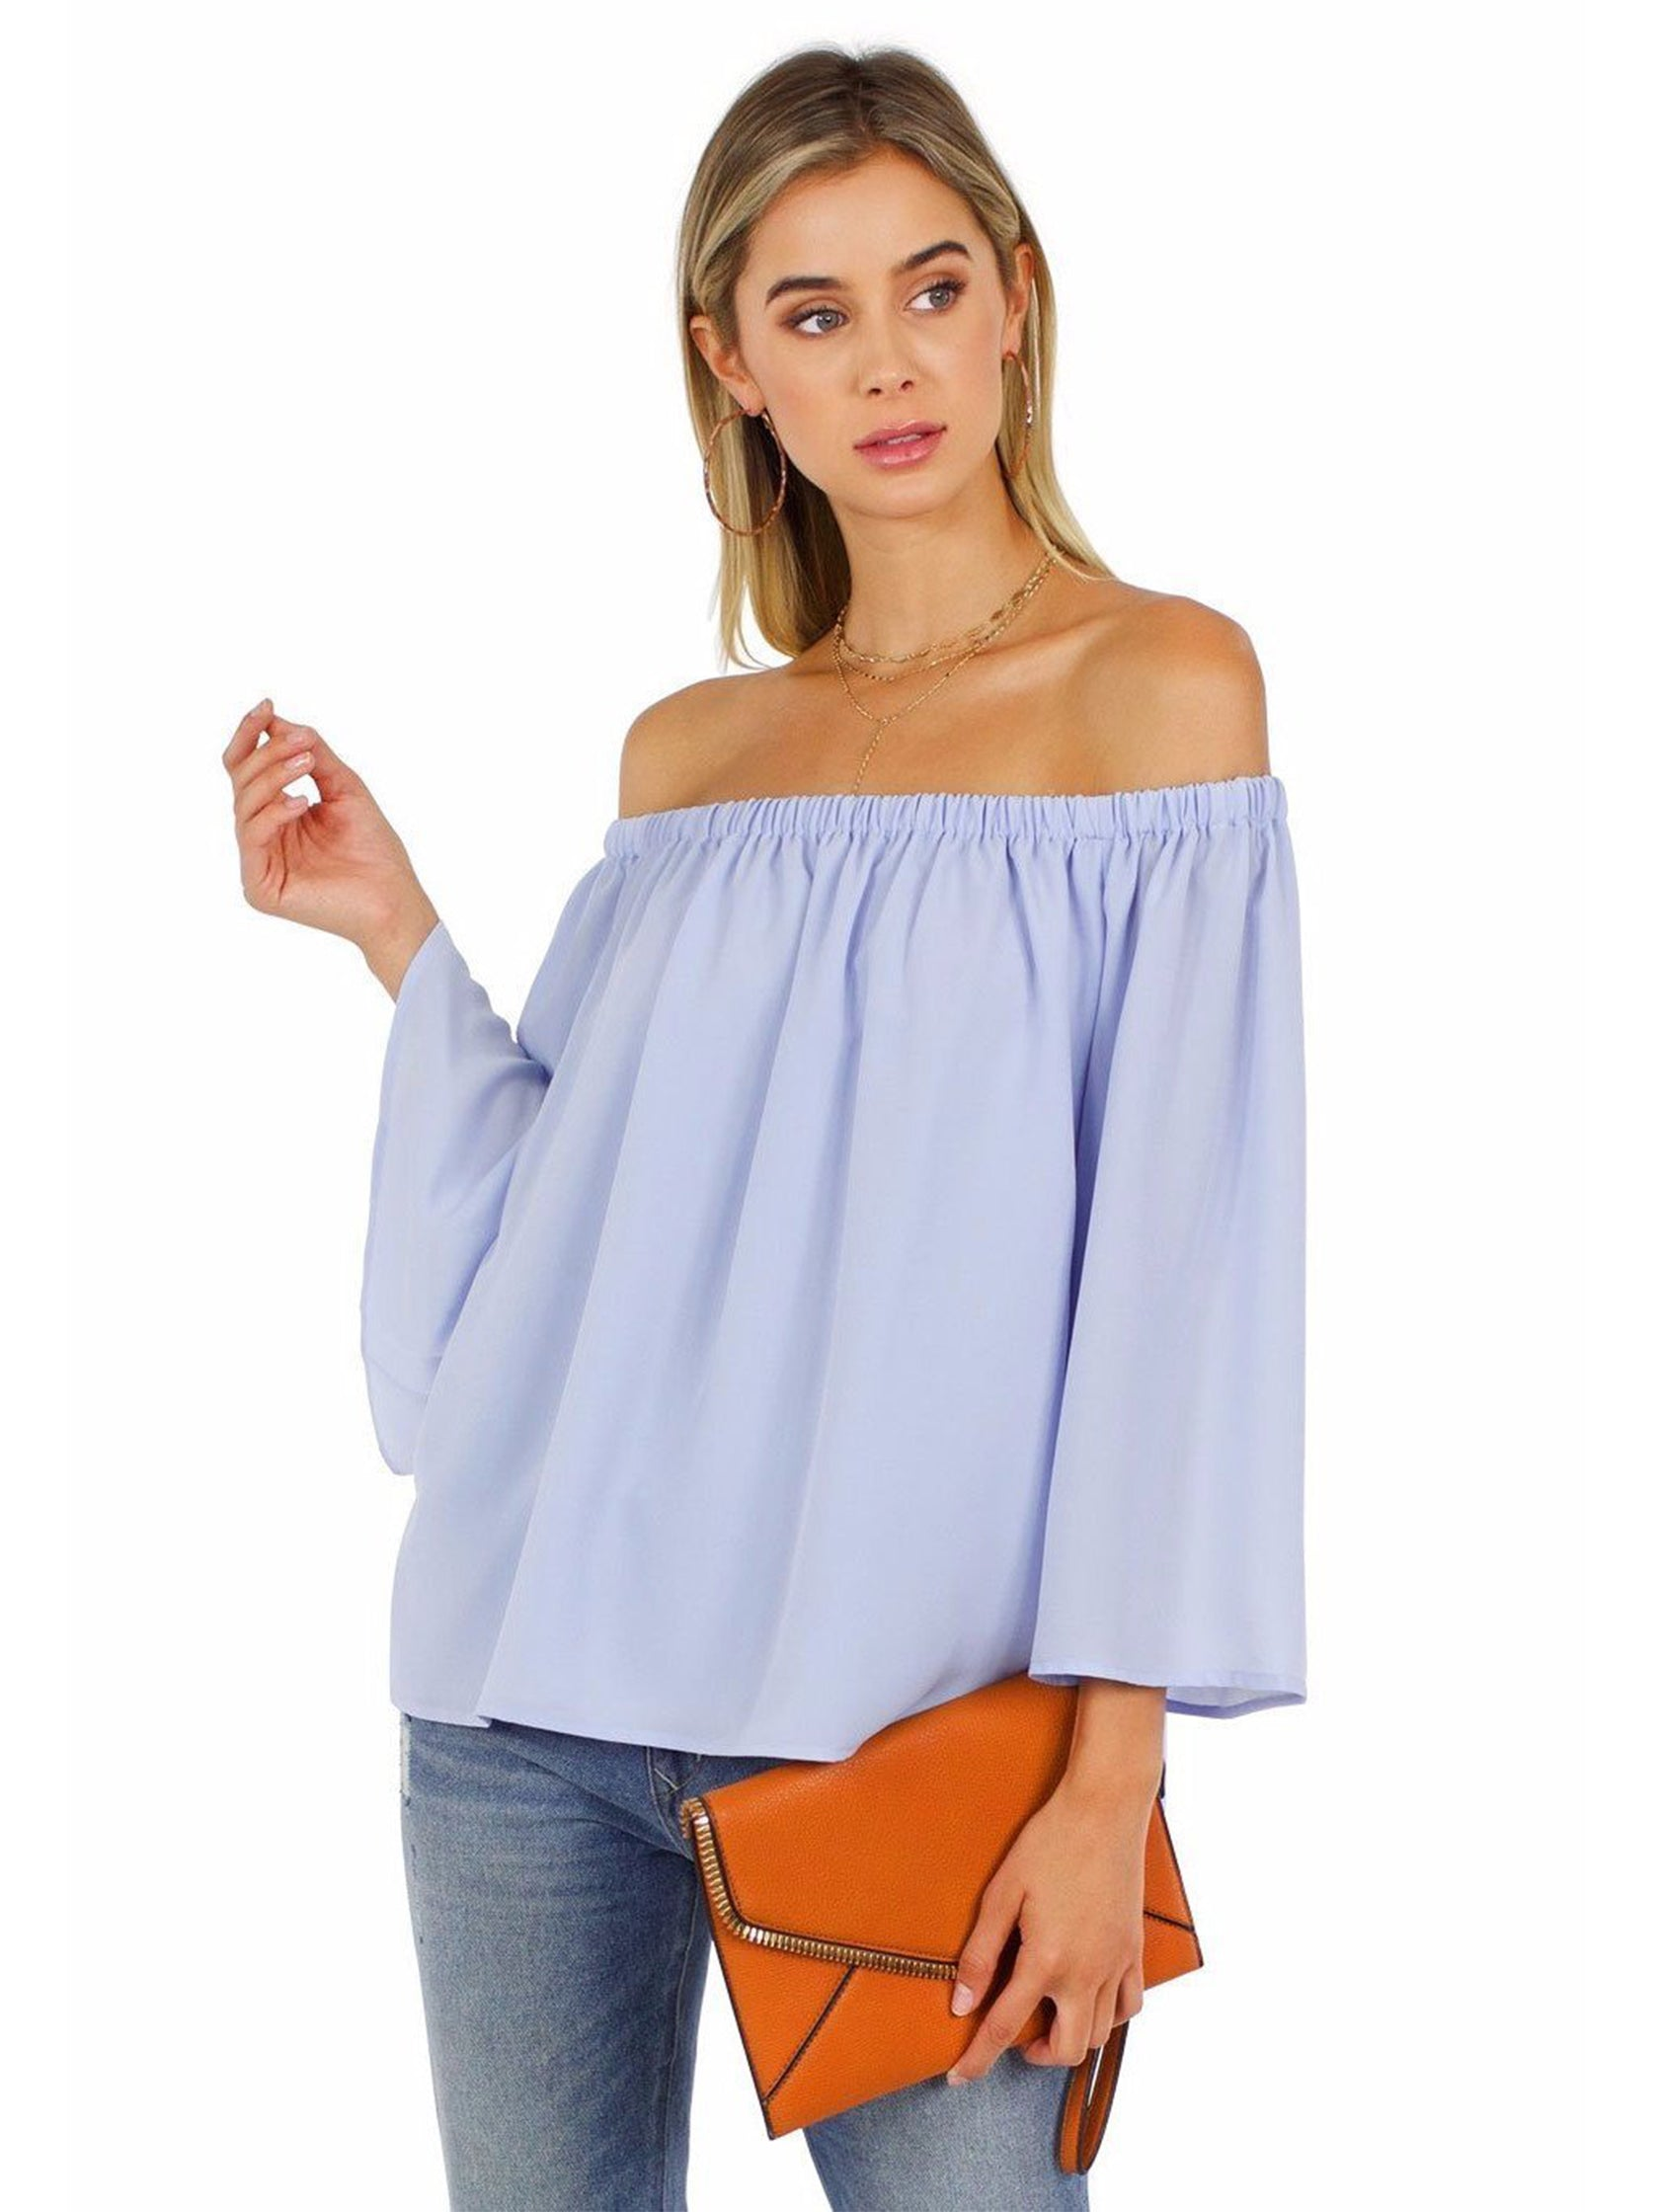 Girl outfit in a top rental from French Connection called Off Shoulder Top